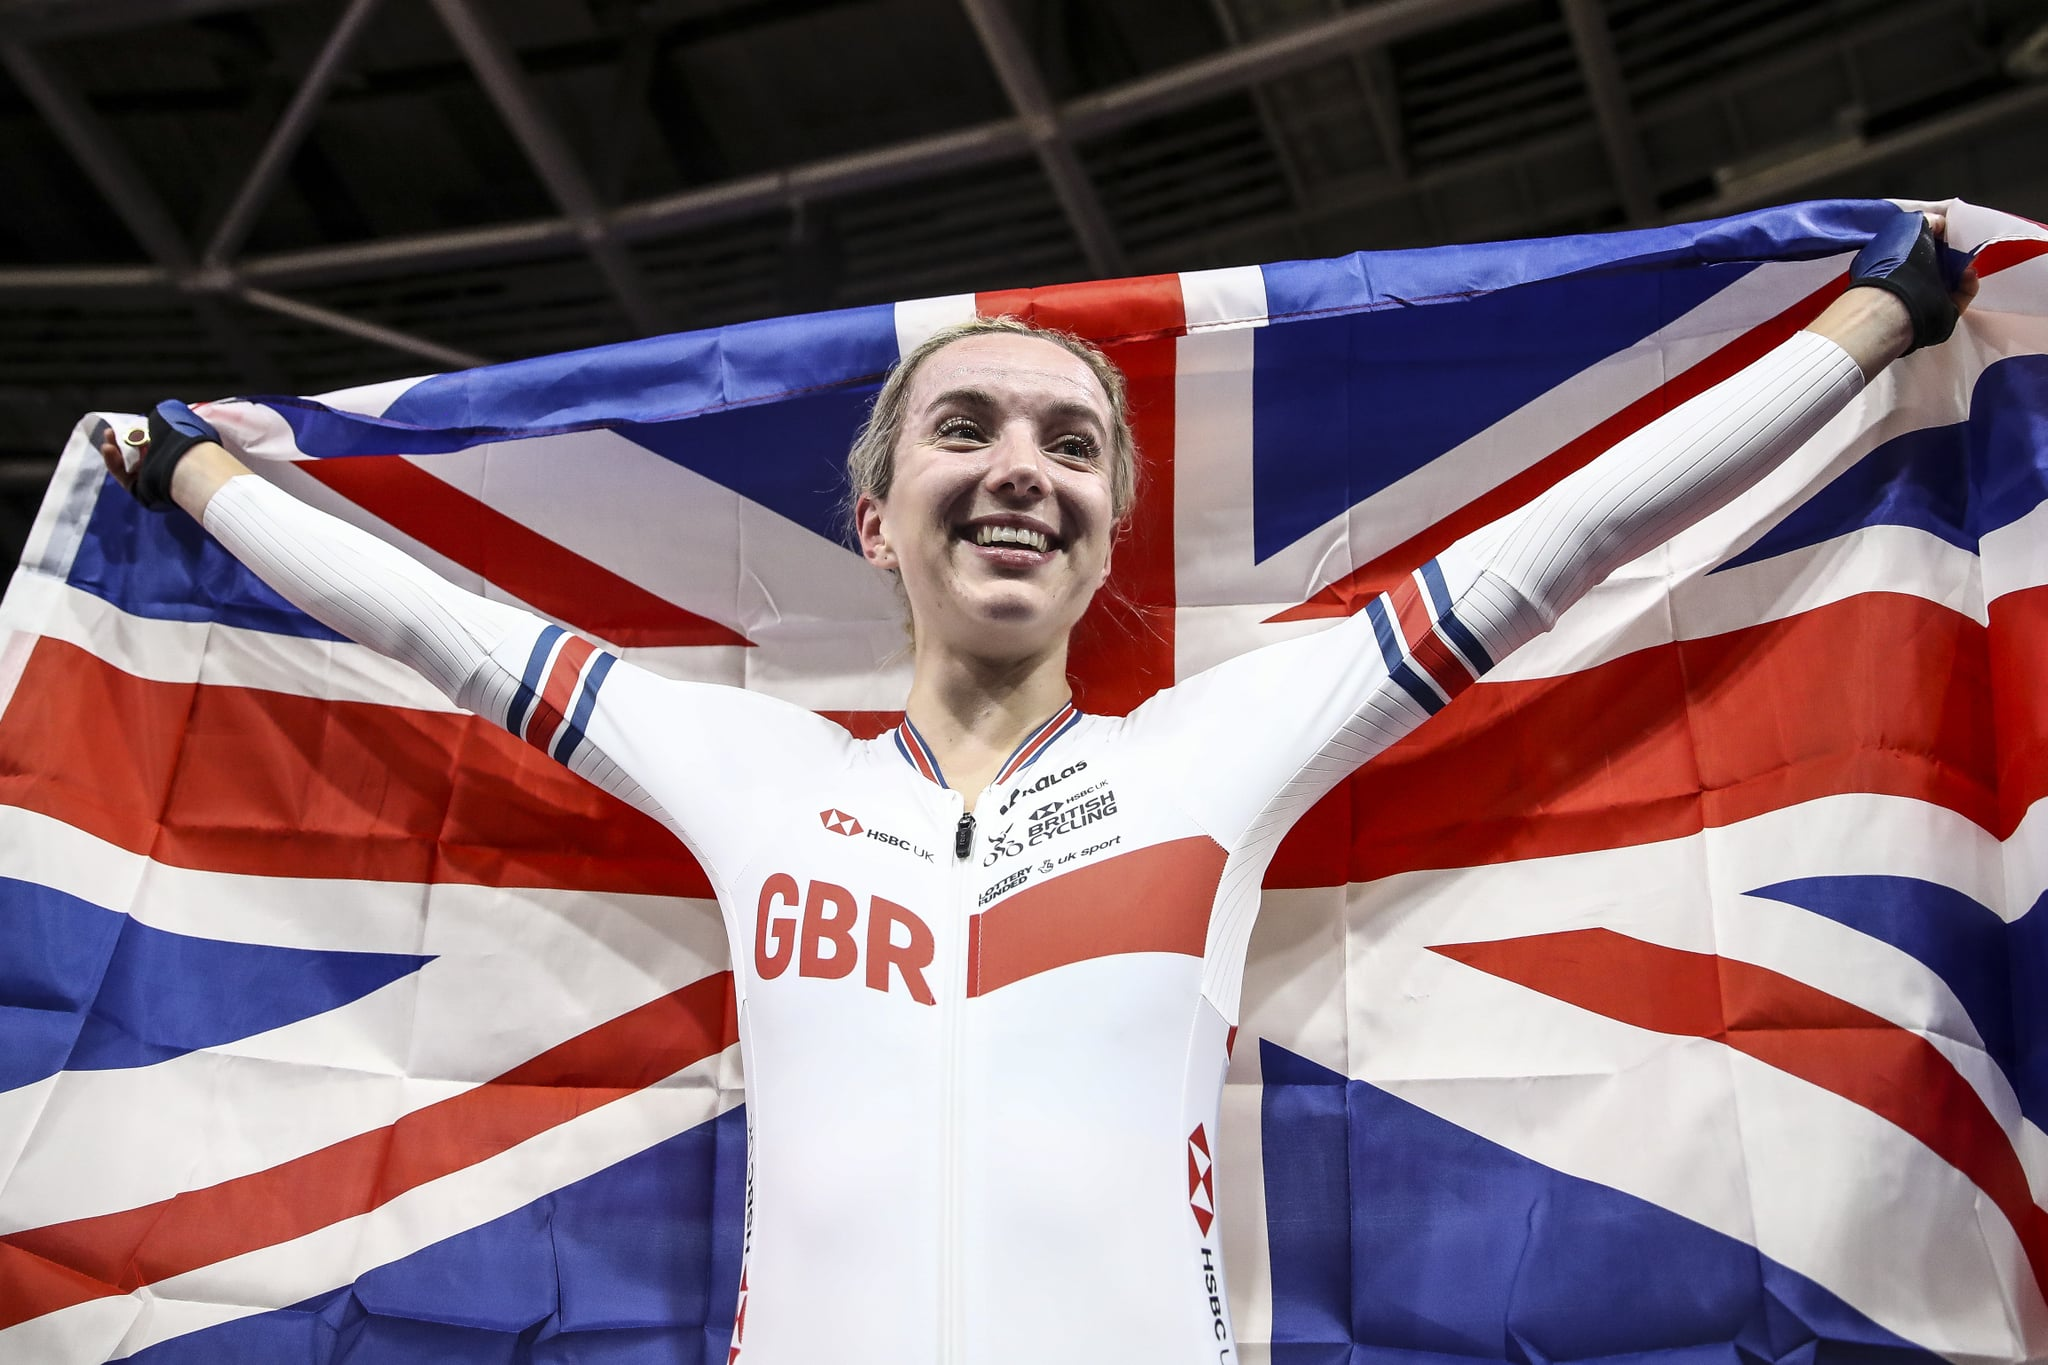 BERLIN, GERMANY - MARCH 01: Elinor Barker of Great Britain celebrates after winning Women's Points Race during day 5 of the UCI Track Cycling World Championships Berlin at Velodrom on March 01, 2020 in Berlin, Germany. (Photo by Maja Hitij/Getty Images)